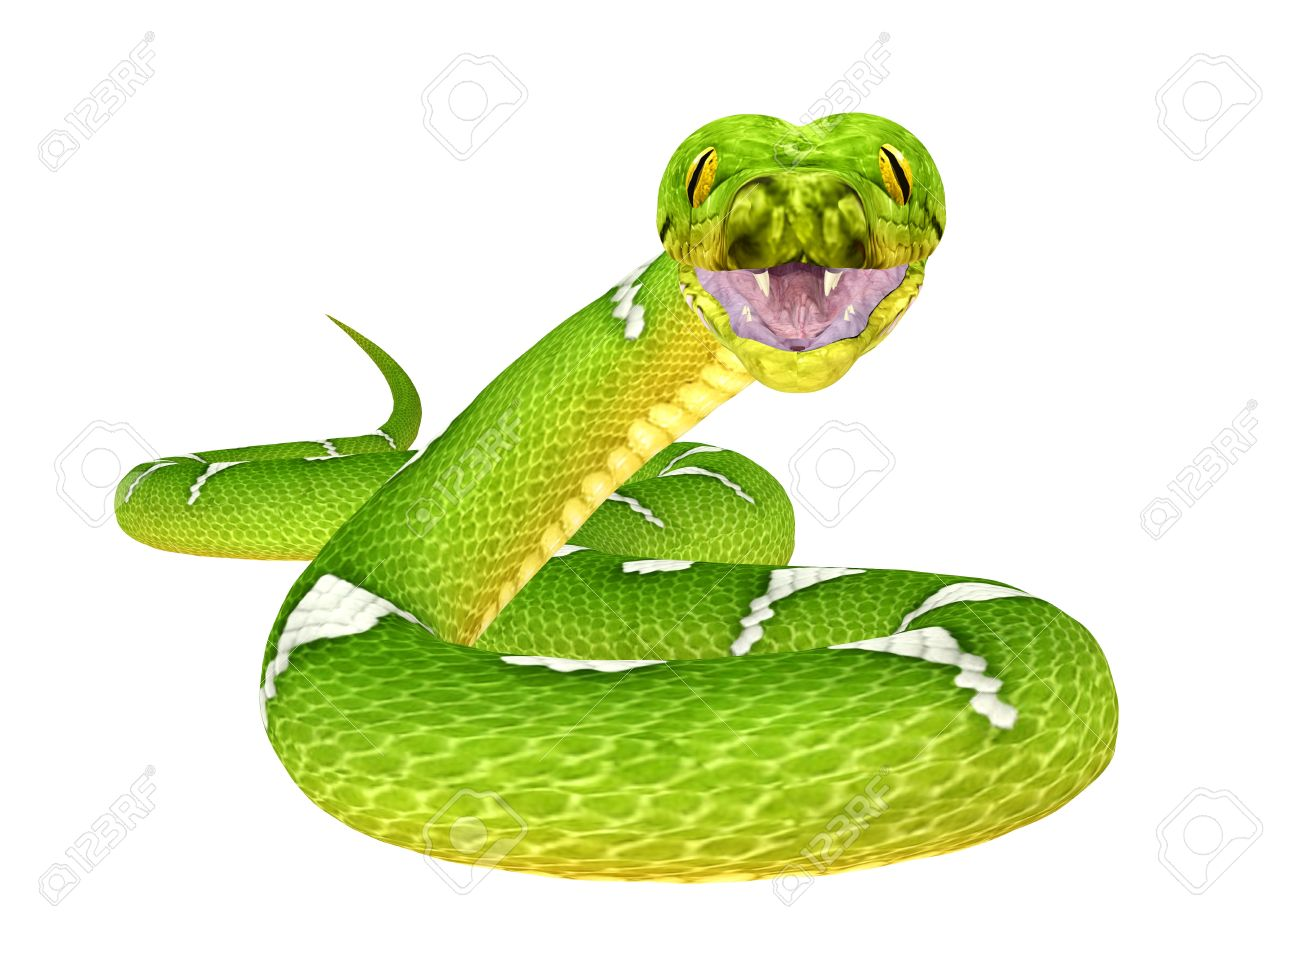 Illustration Of A Green Tree Python Snake Species Isolated.. Stock.